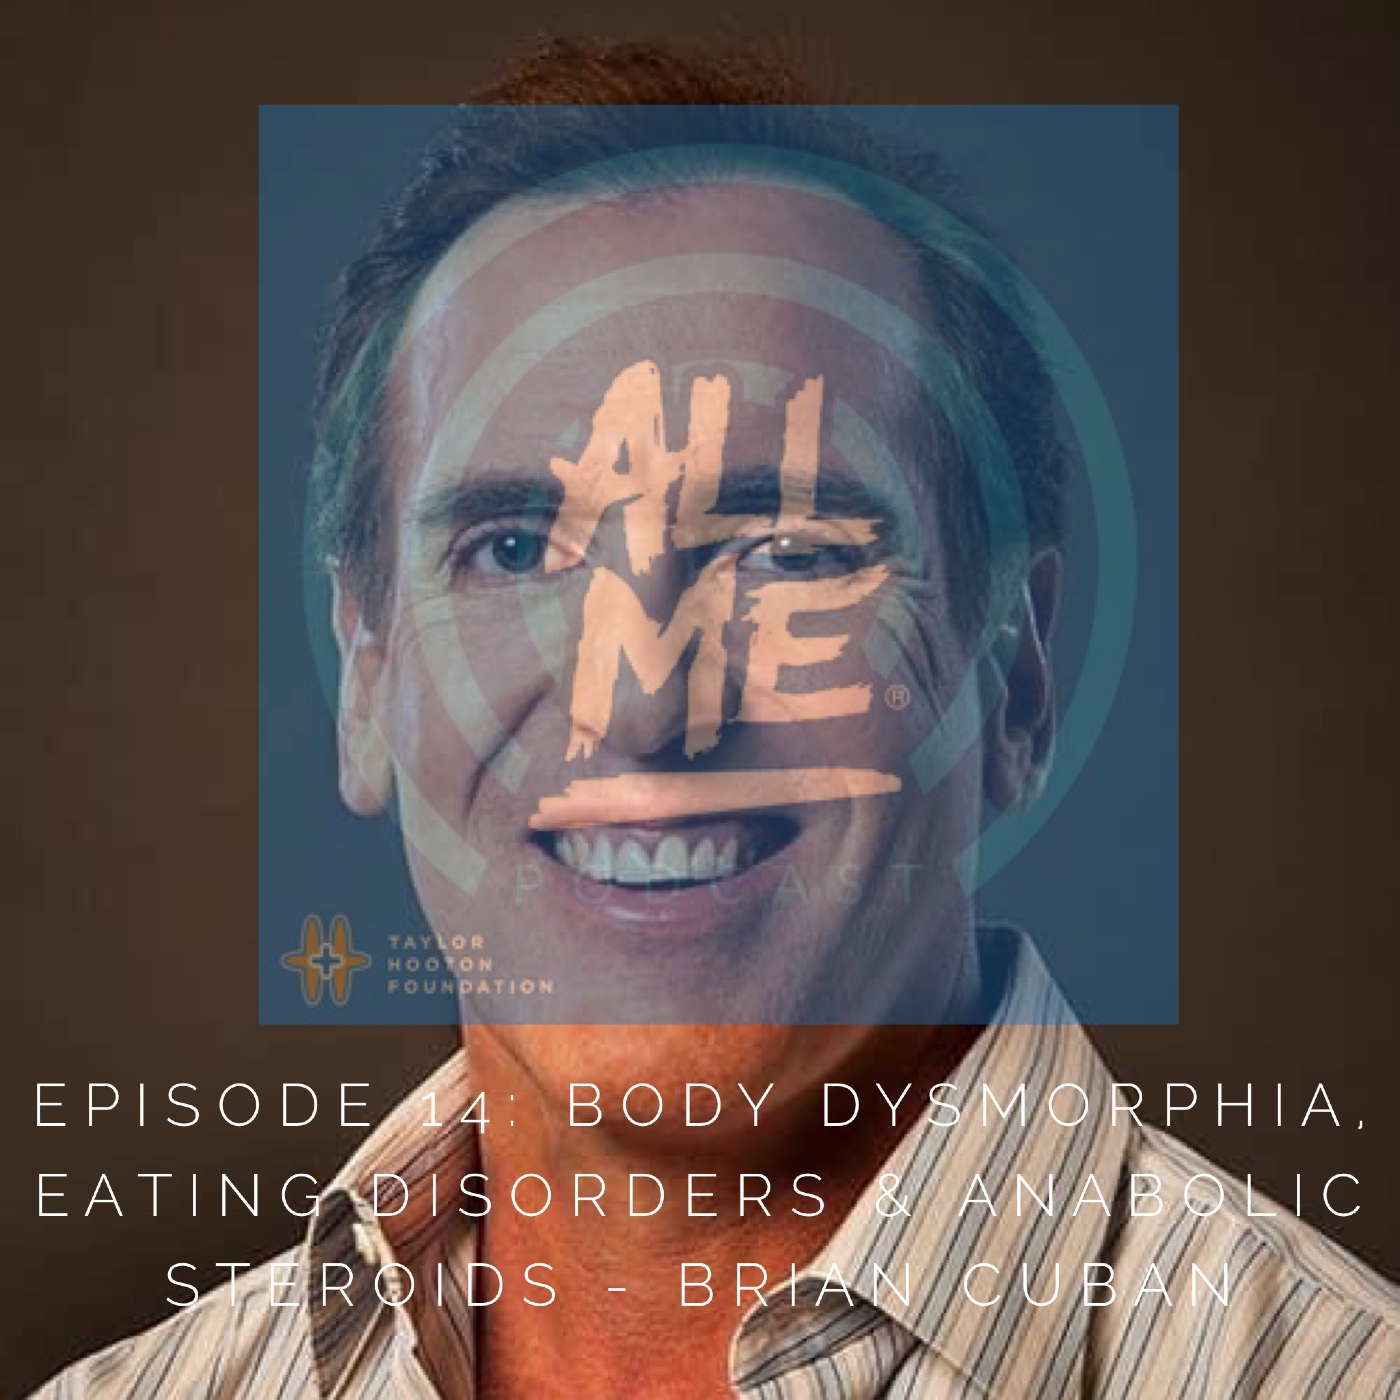 Episode 14: Body Dysmorphia, Eating Disorders & Anabolic Steroids – Brian Cuban